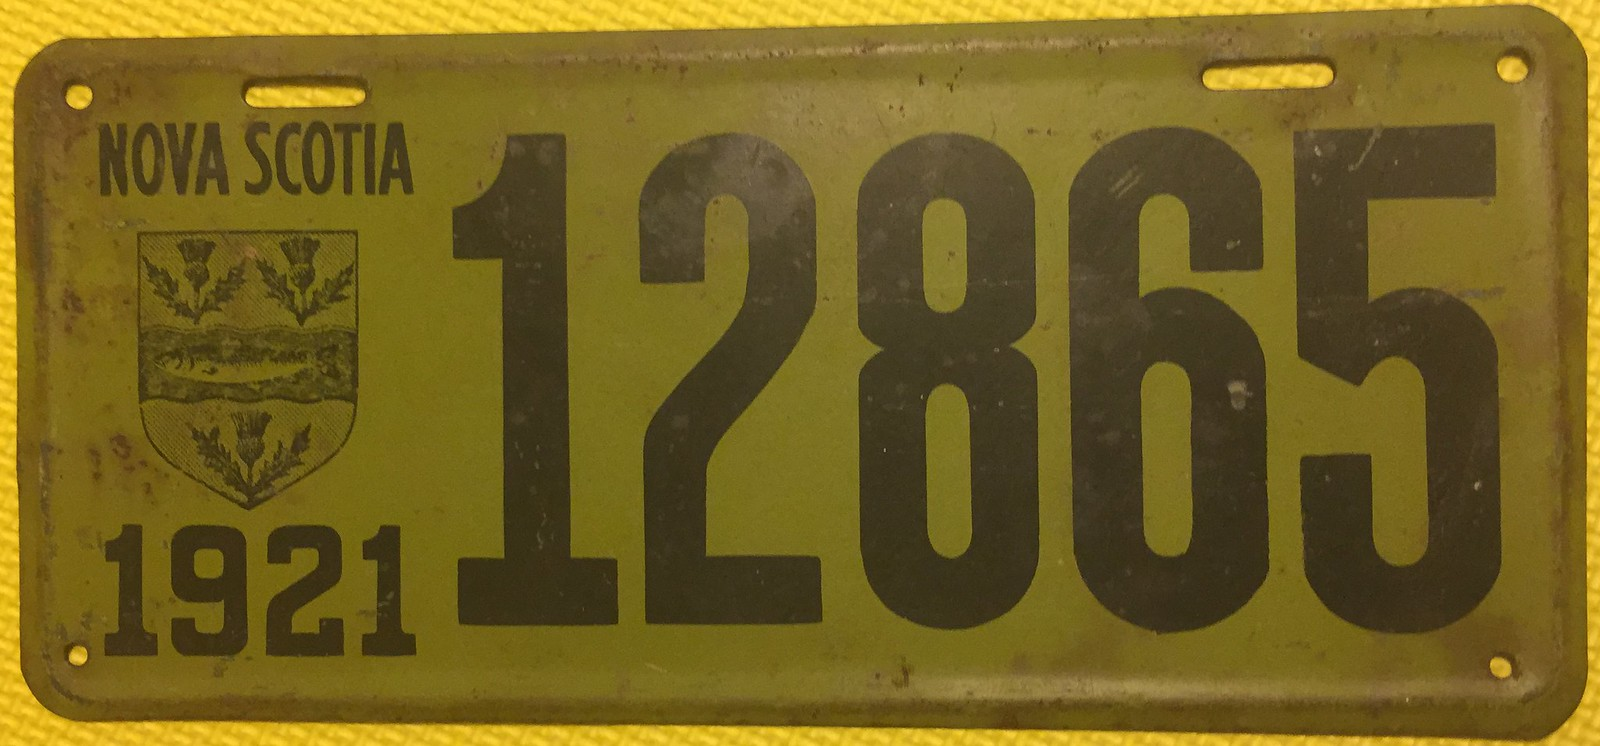 NOVA SCOTIA LICENSE PLATE HISTORY 1918 to current baseplate   Flickr